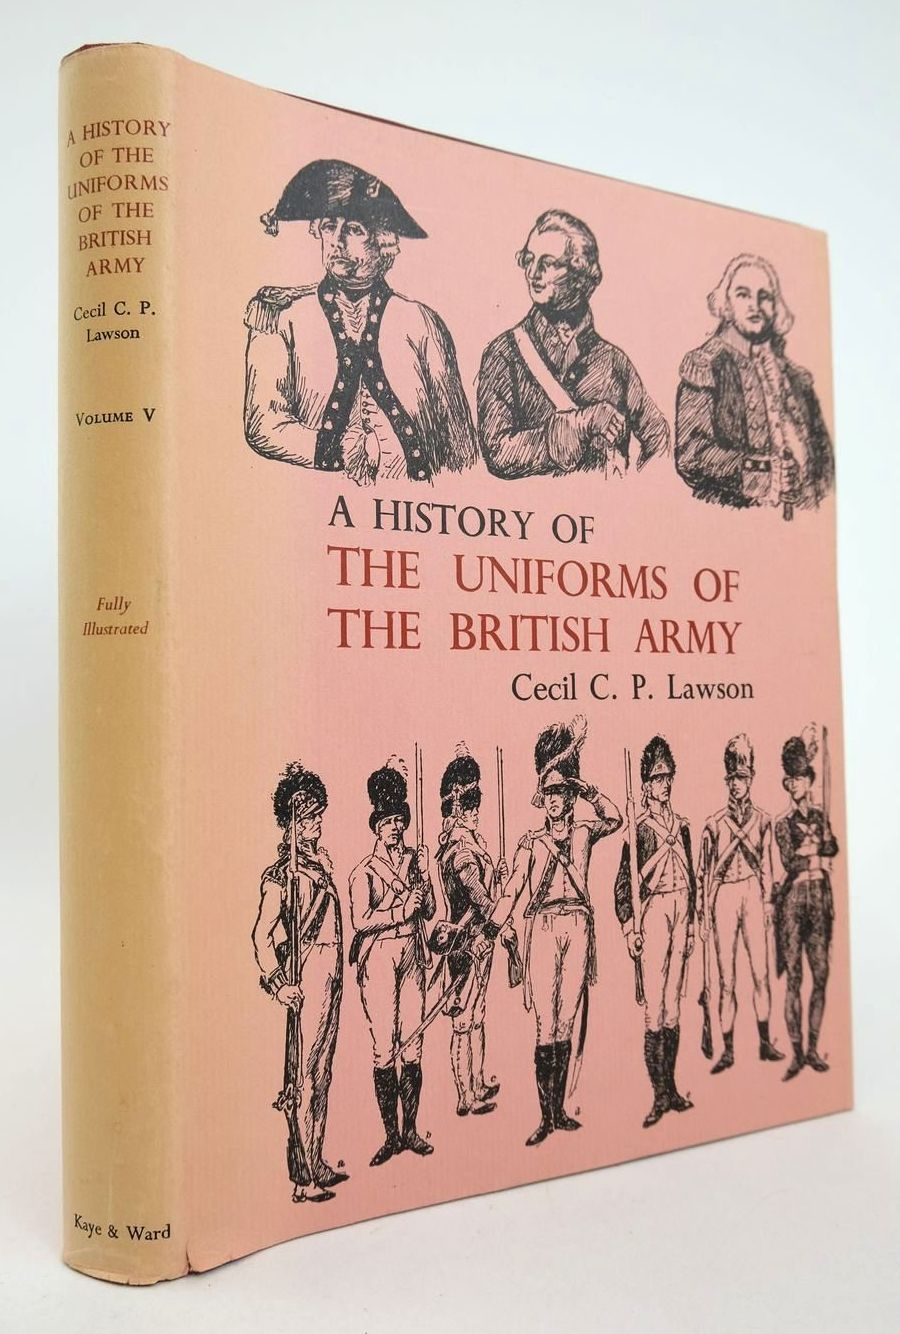 Photo of A HISTORY OF THE UNIFORMS OF THE BRITISH ARMY VOLUME V written by Lawson, Cecil C.P. illustrated by Lawson, Cecil C.P. published by Kaye & Ward (STOCK CODE: 2132775)  for sale by Stella & Rose's Books